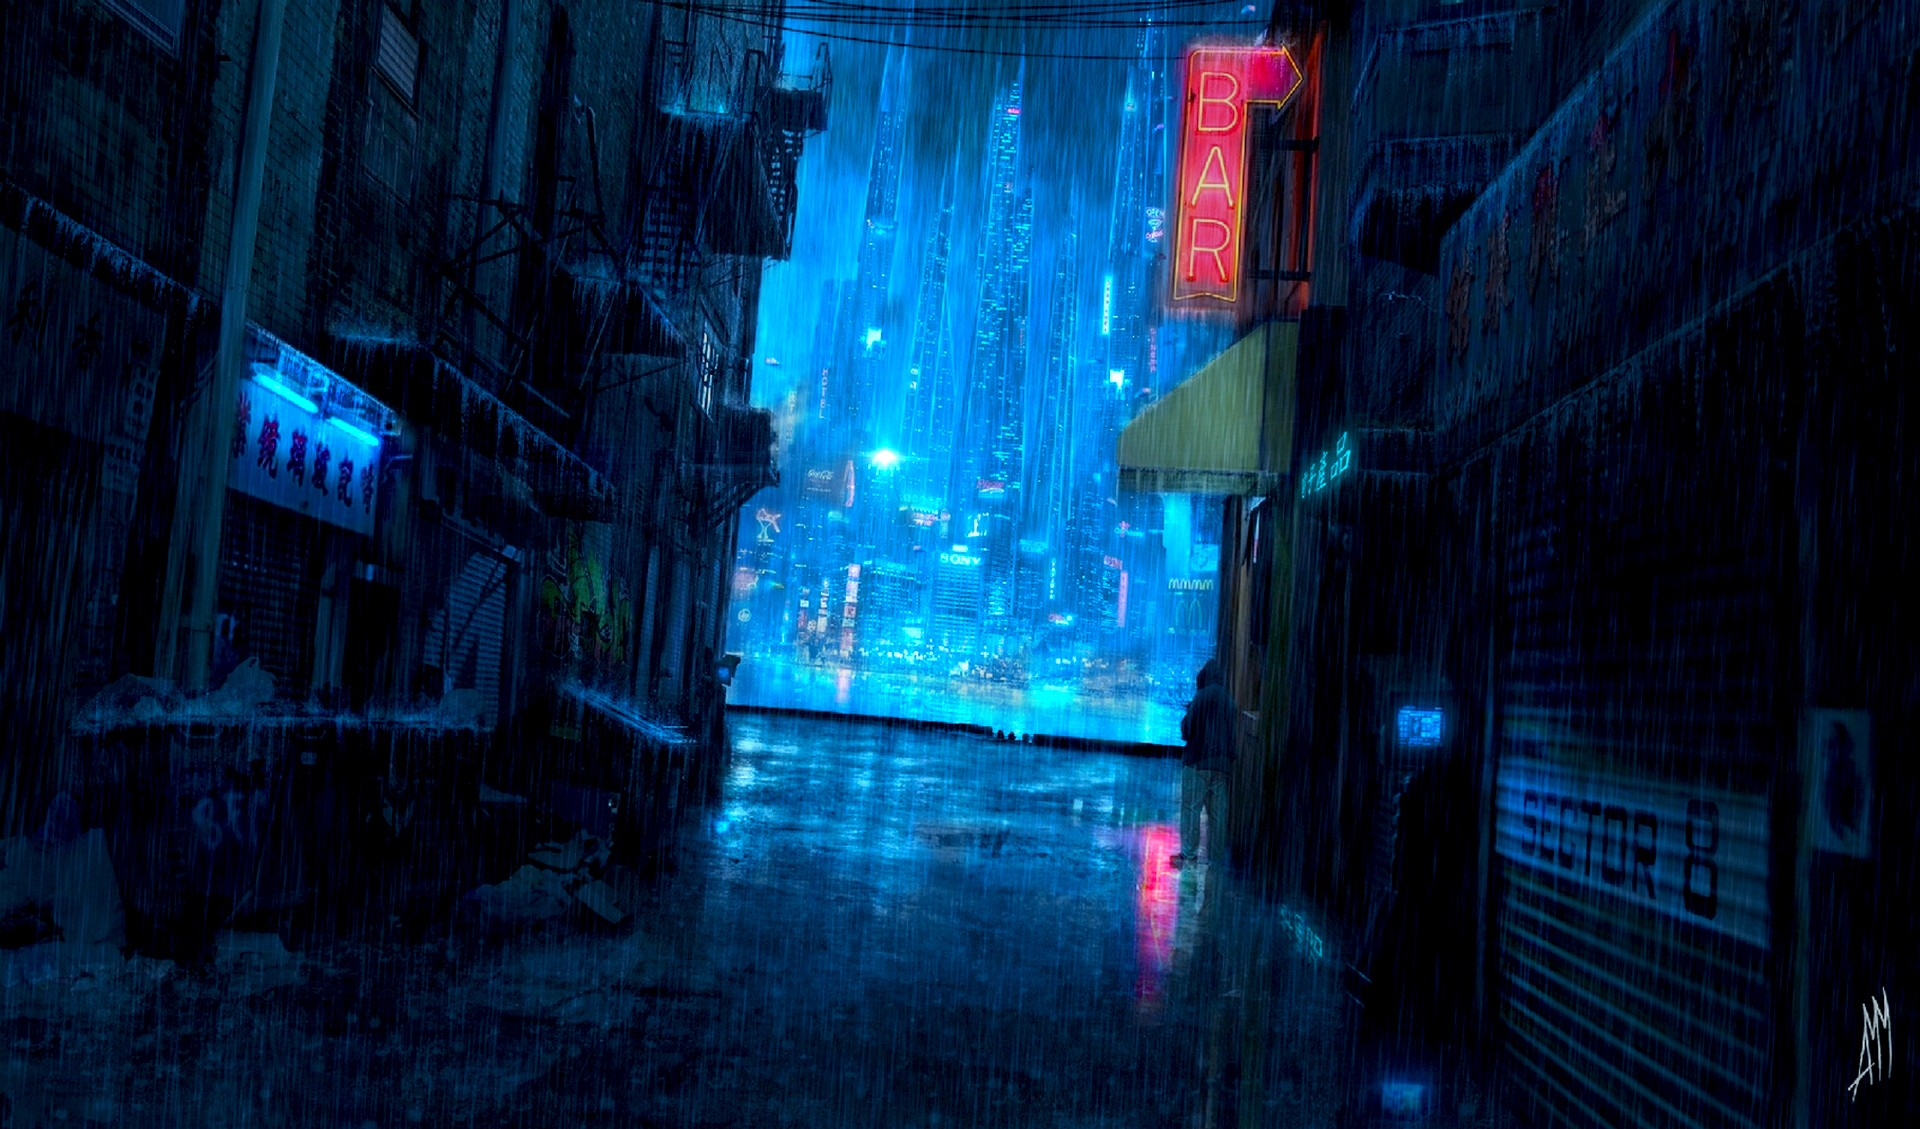 Dark anime scenery wallpaper download free stunning - Anime backgrounds com ...